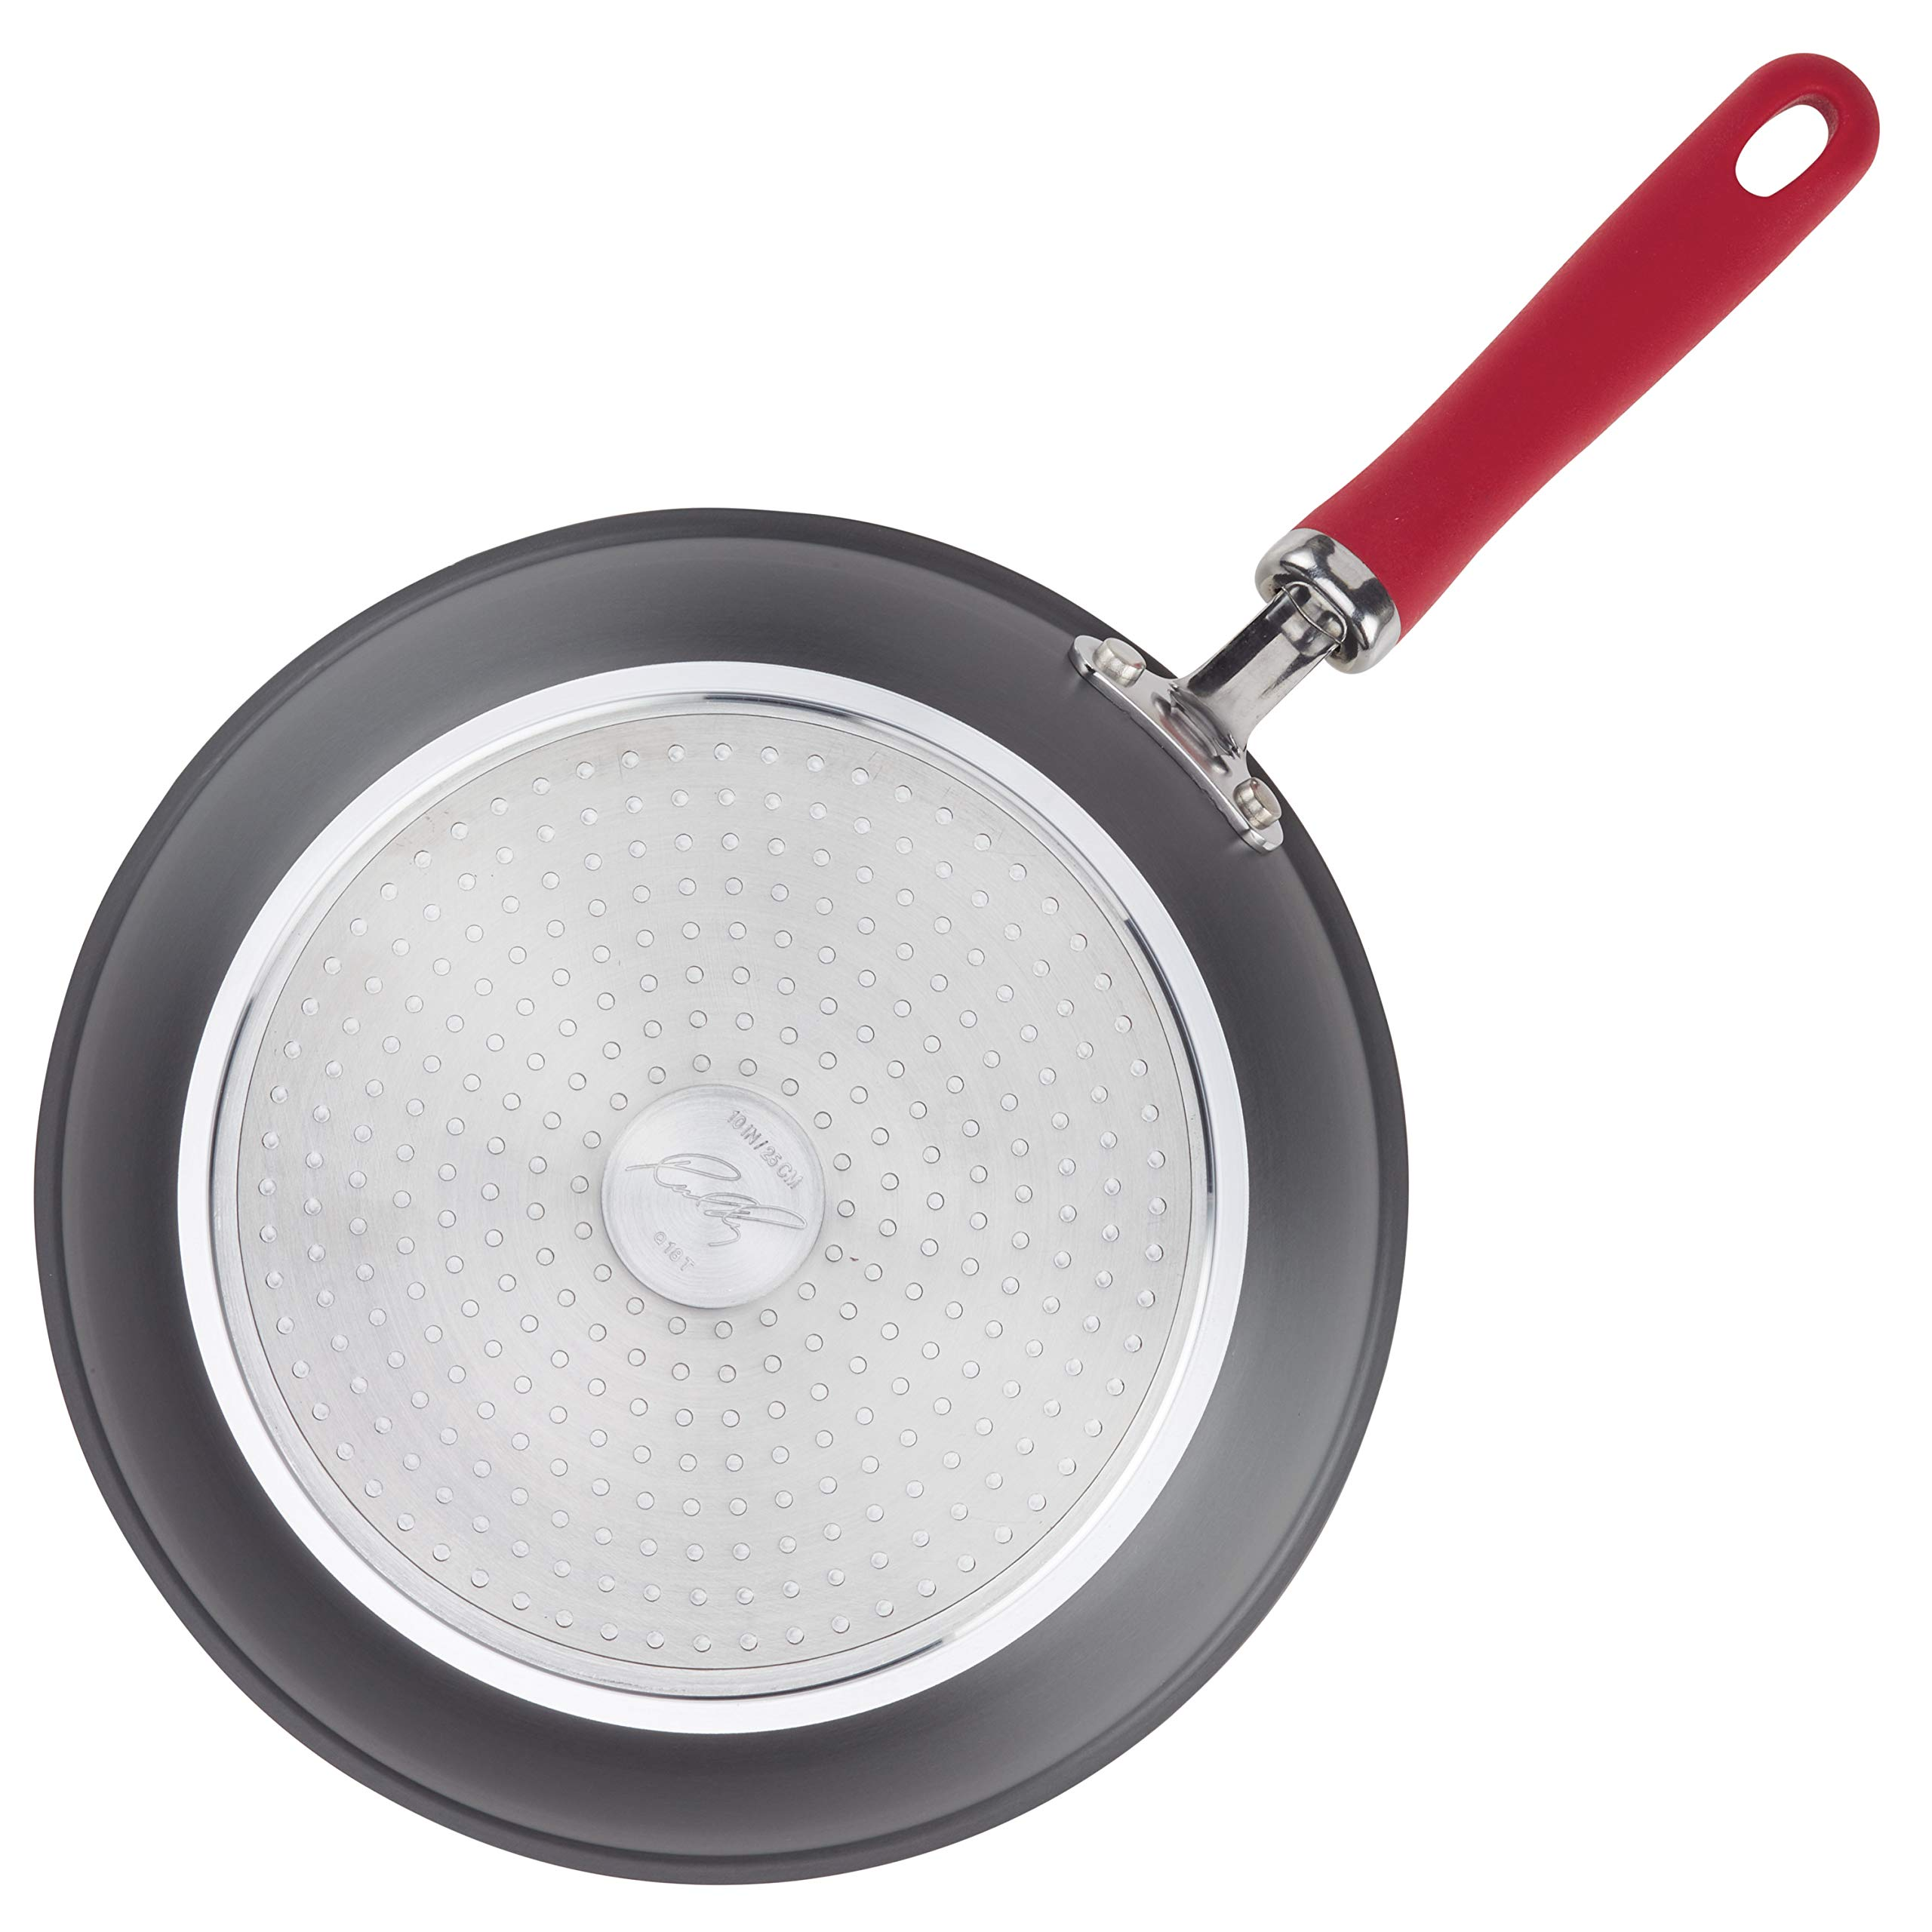 Rachael Ray Create Delicious Hard-Anodized Aluminum Nonstick Deep Skillet Twin Pack, 9.5-Inch and 11.75-Inch, Red Handles by Rachael Ray (Image #6)